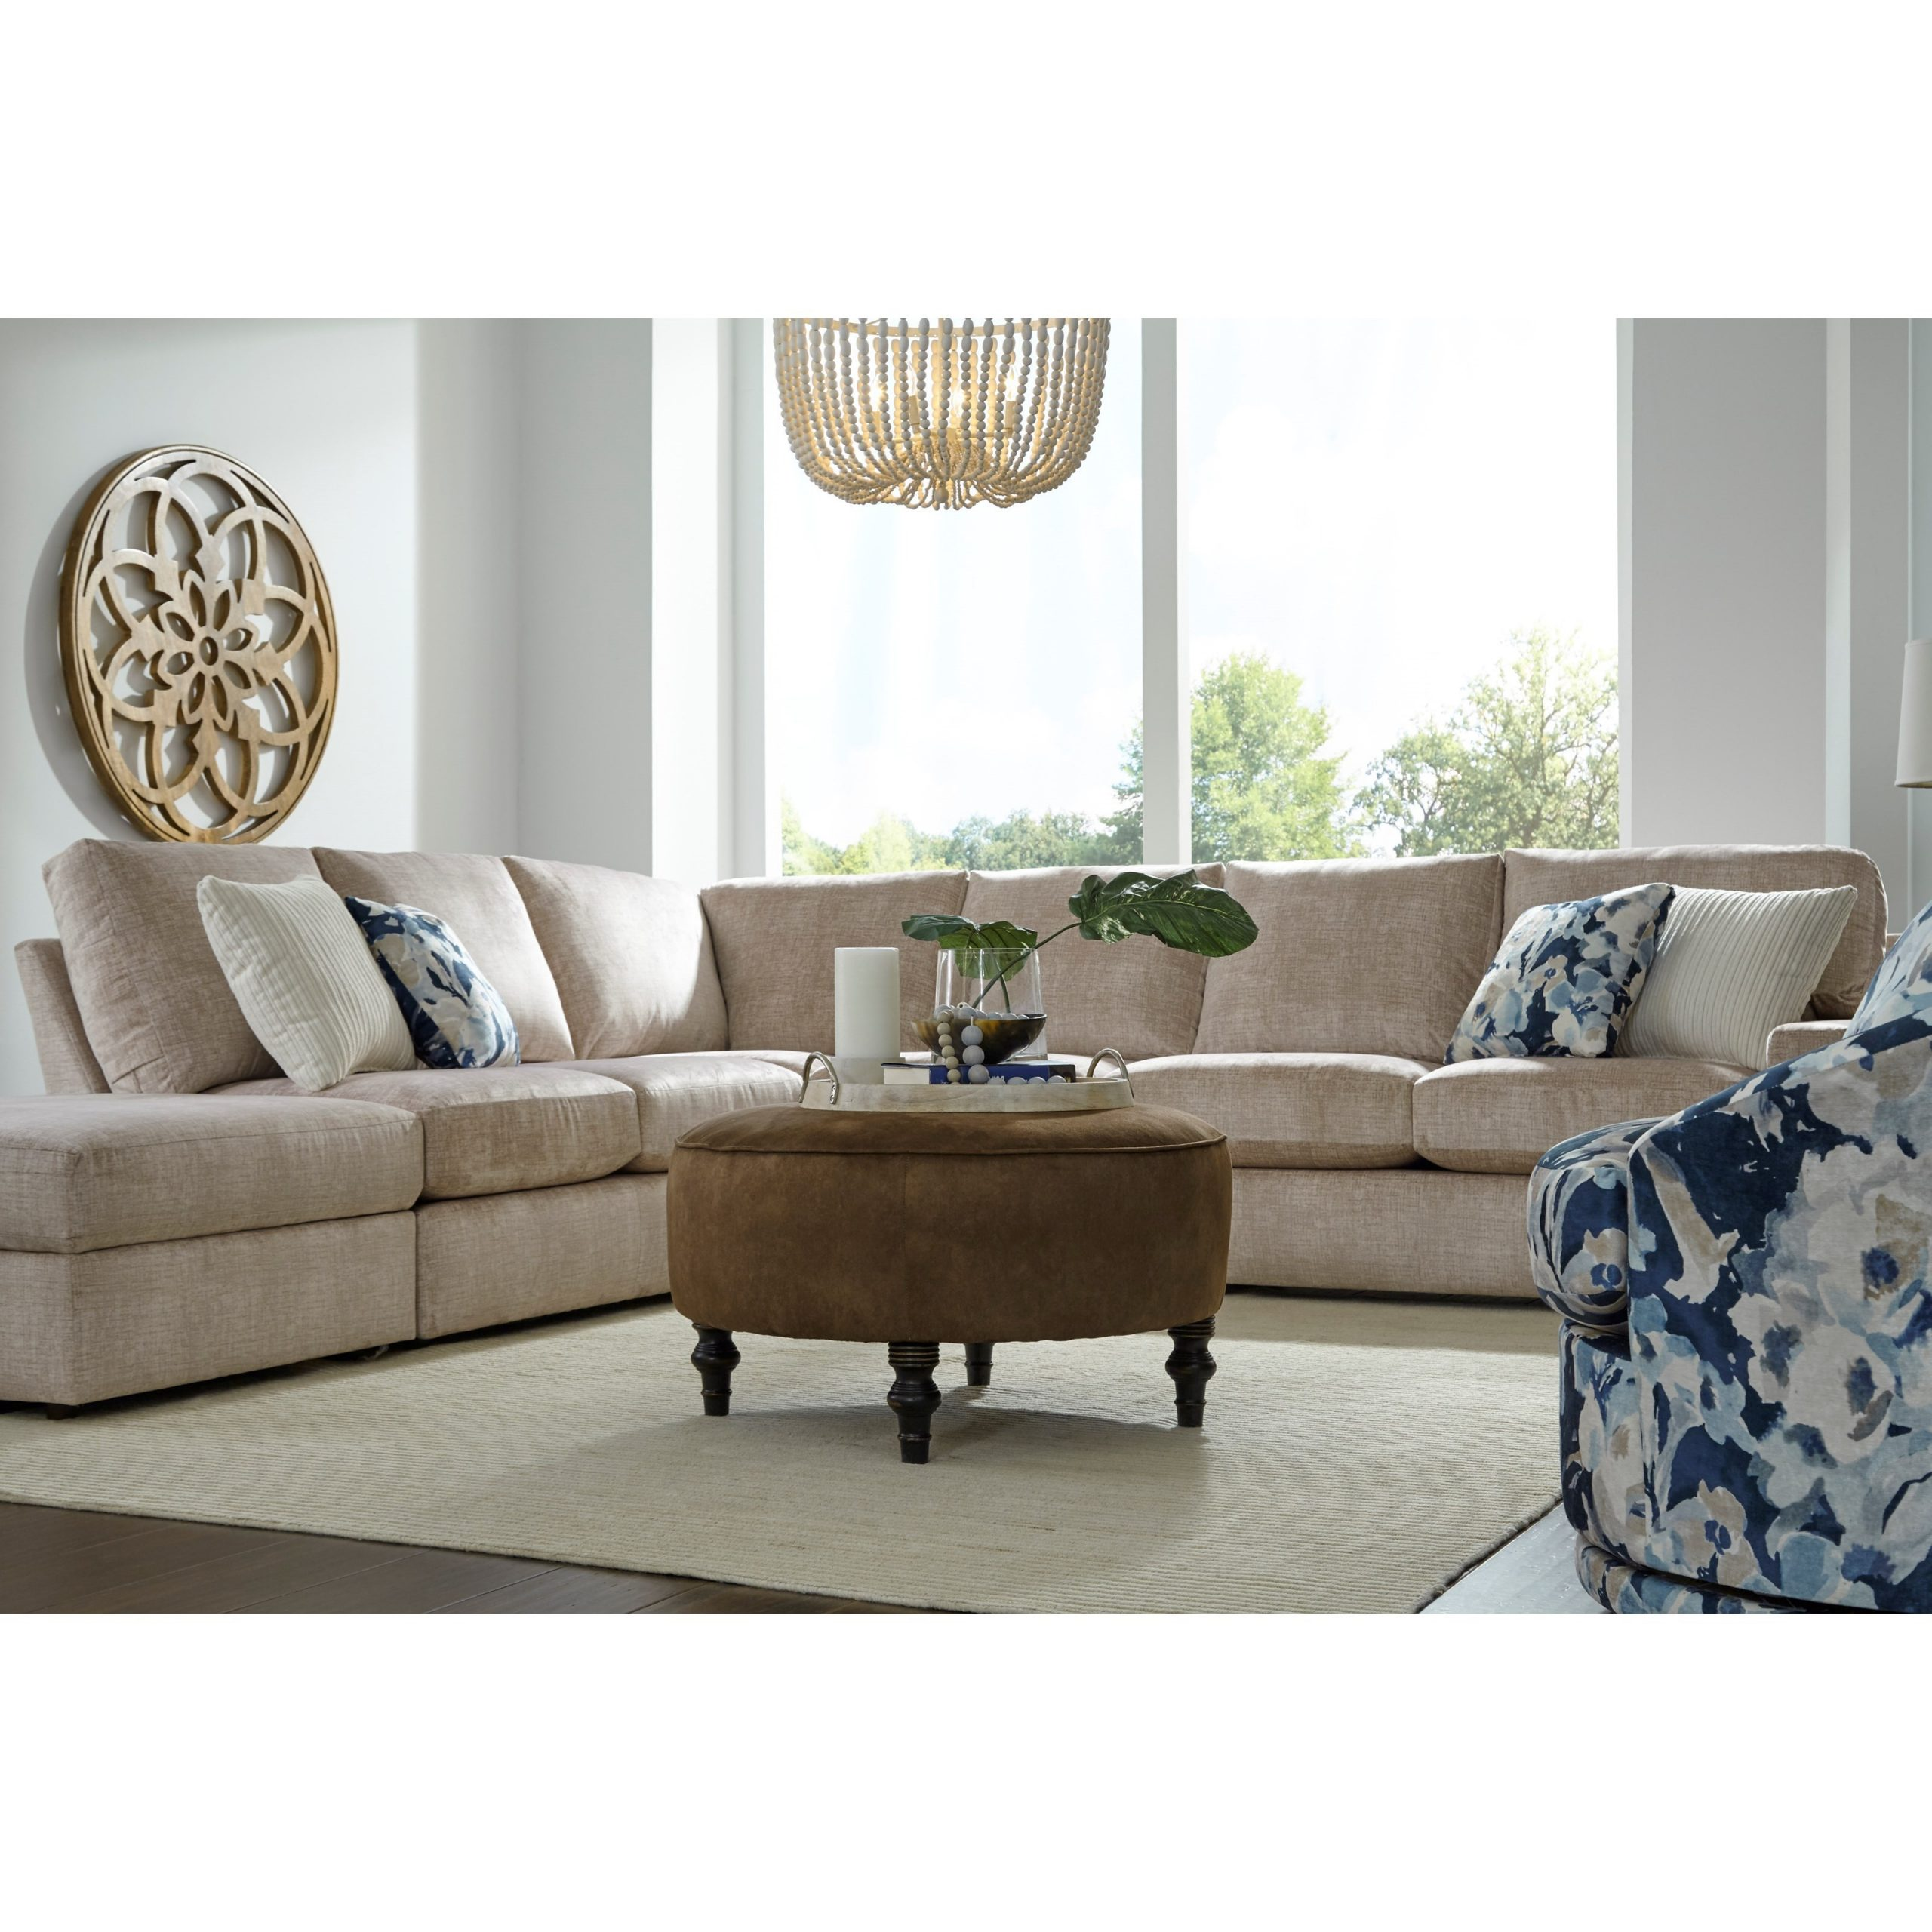 Palisades Reversible Small Space Sectional Sofas With Storage With Regard To Well Liked Best Home Furnishings Dovely Casual Five Seat Sectional (View 3 of 25)